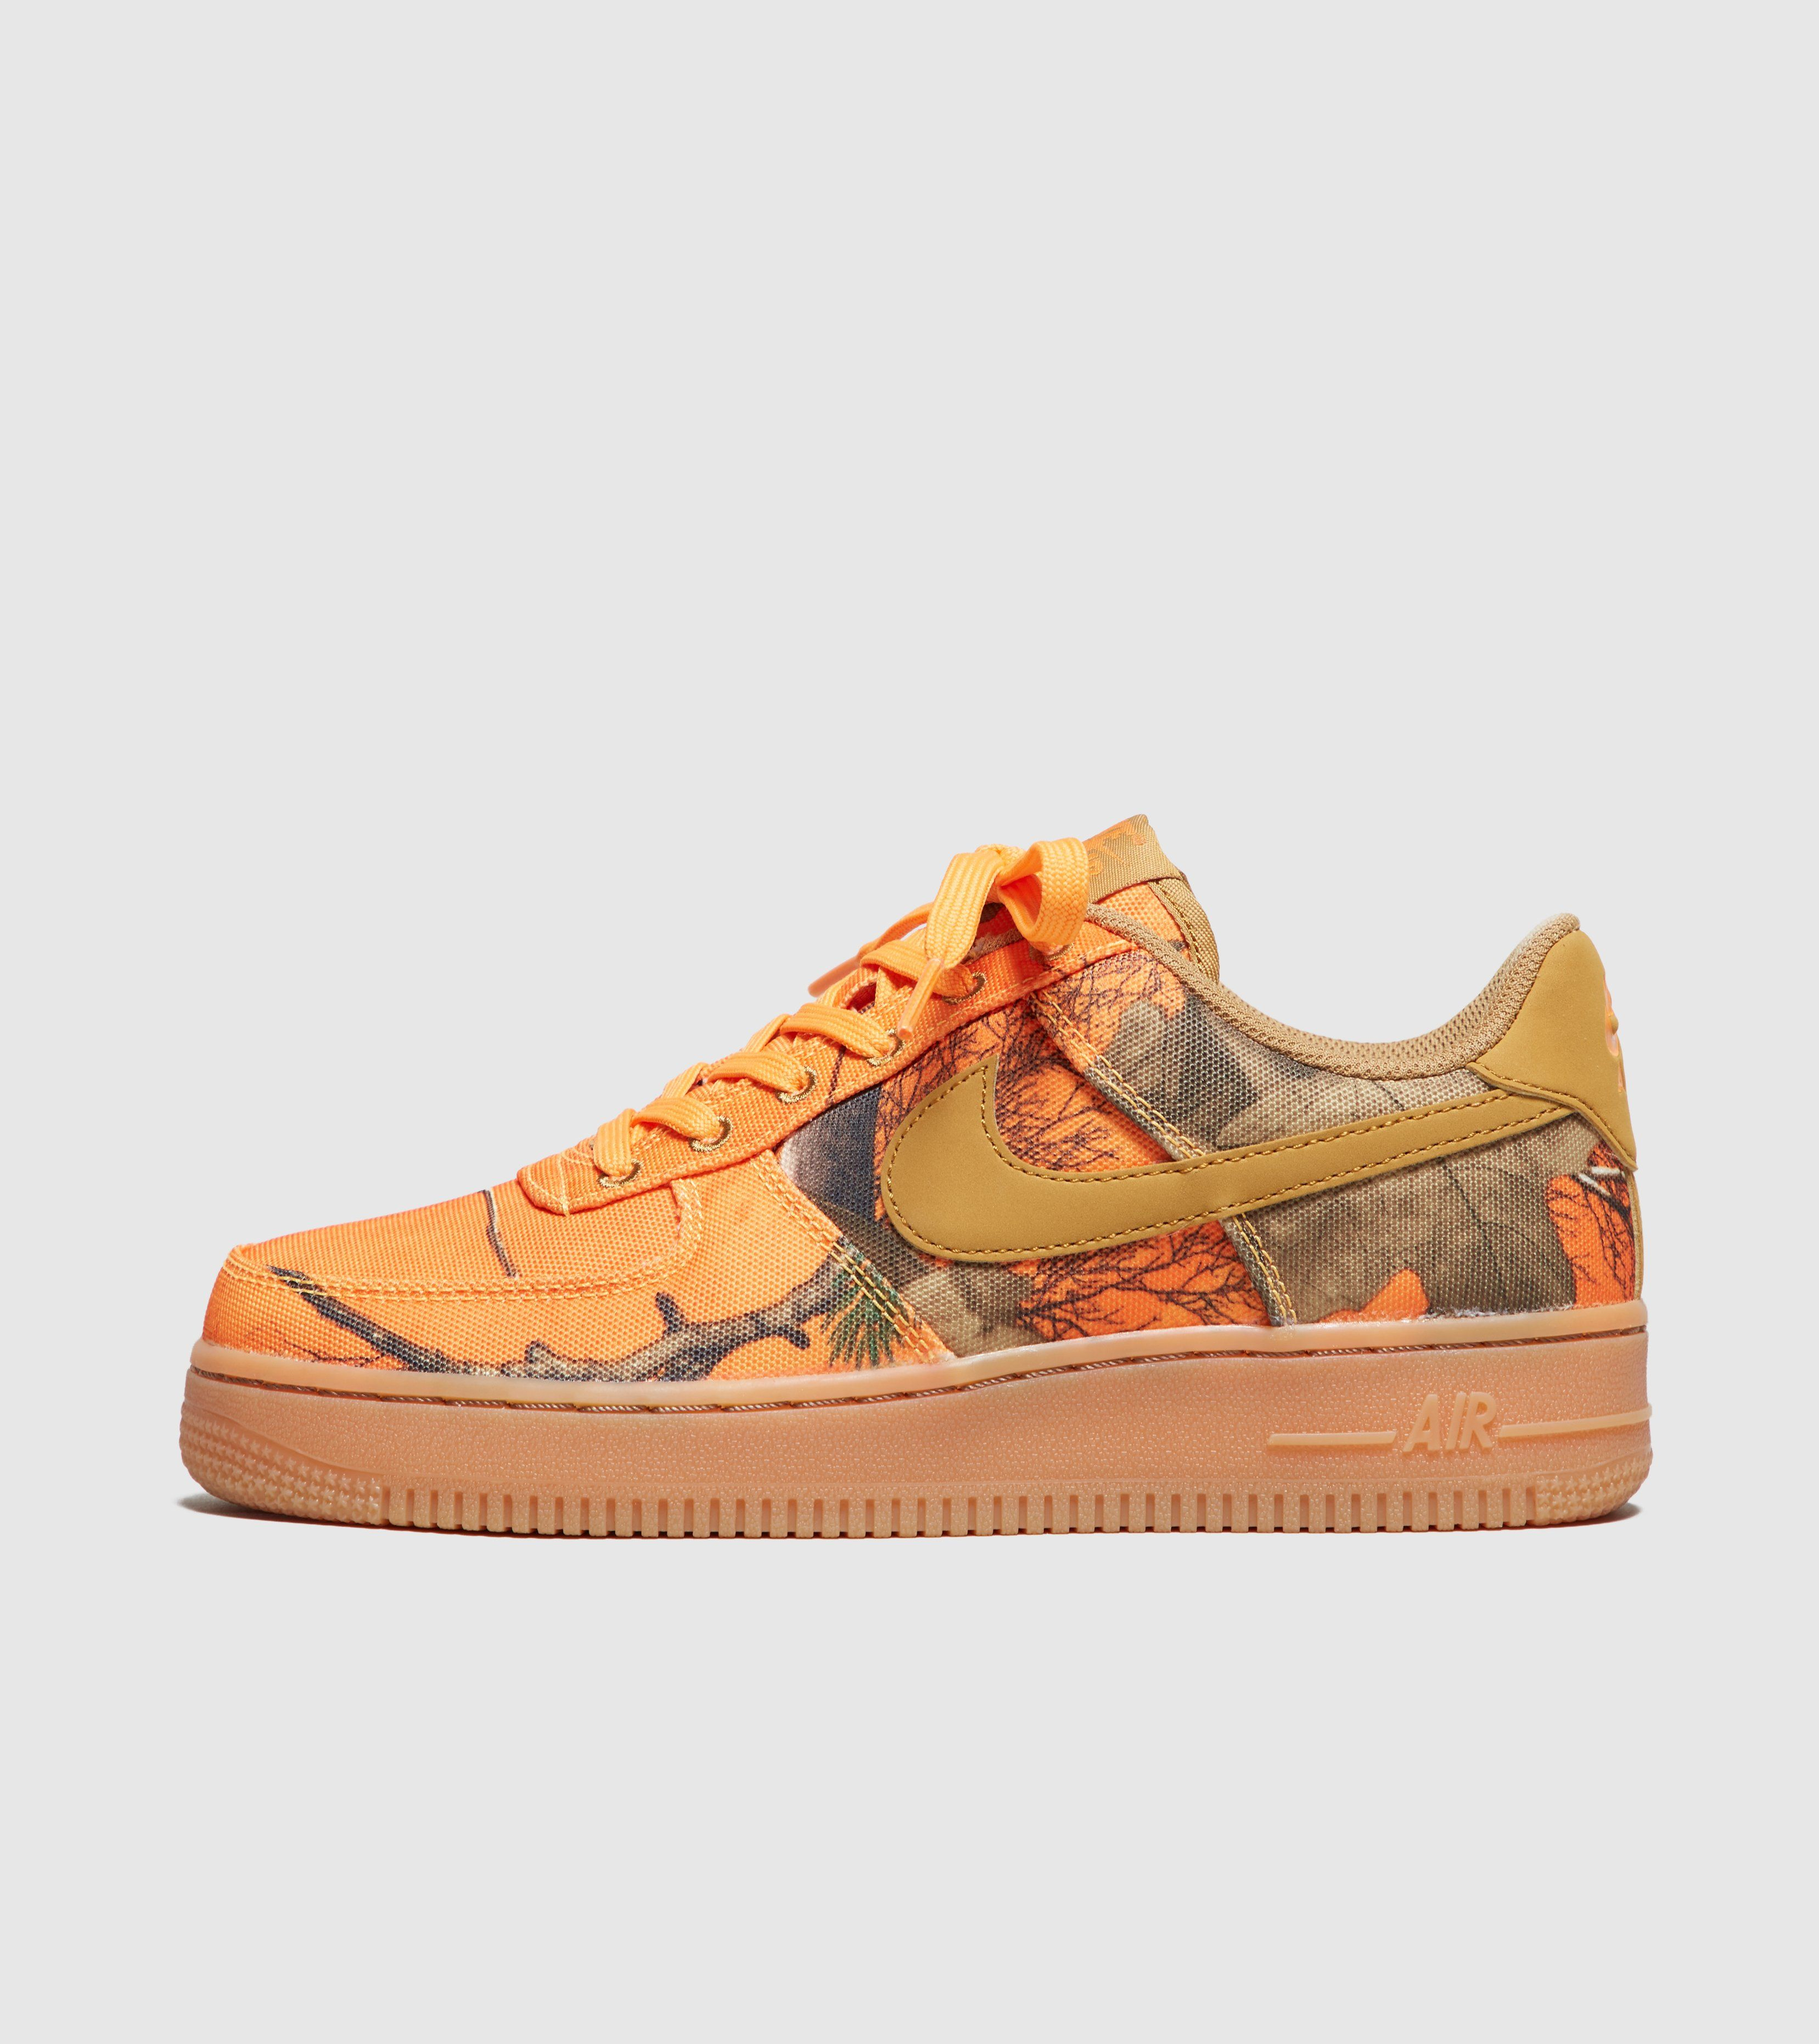 Nike Air Force 1 'Realtree' Camo Pack Women's